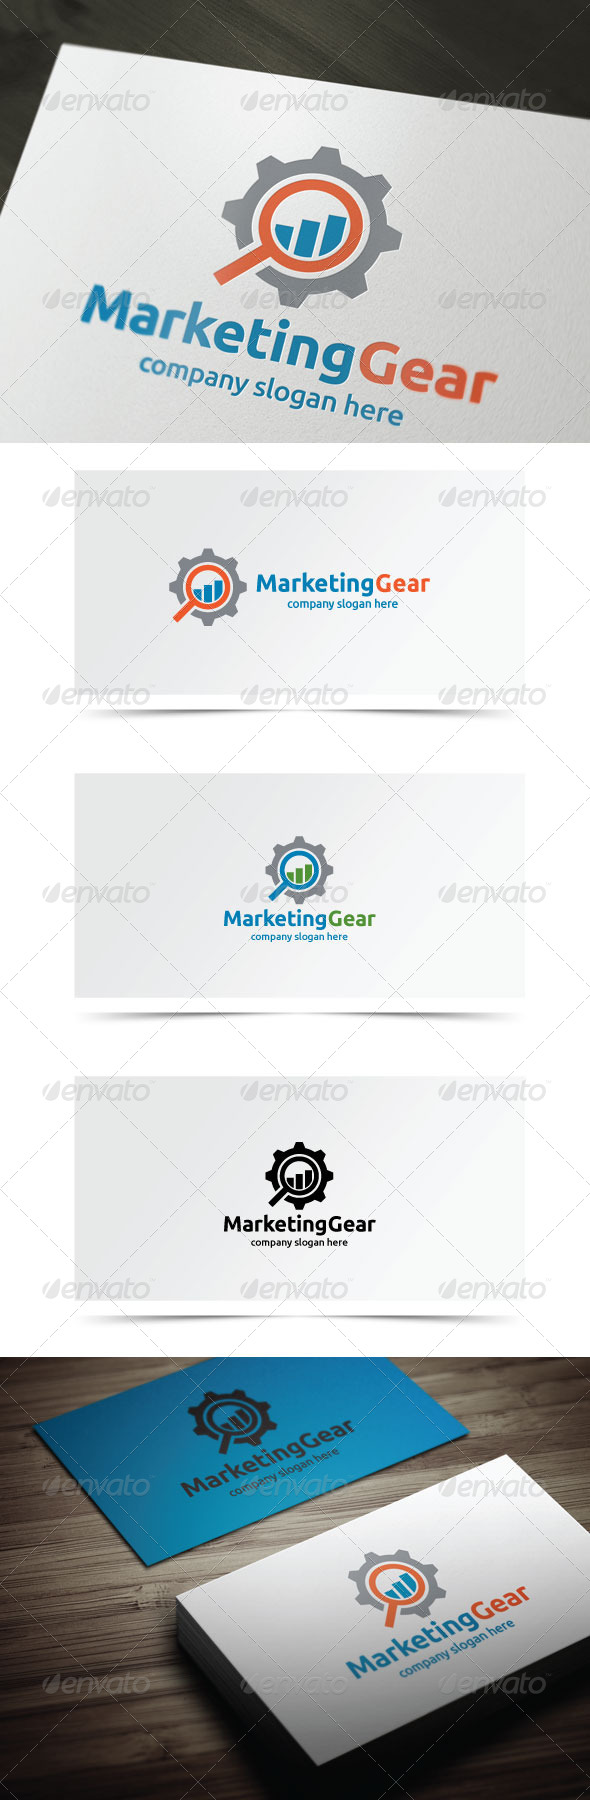 GraphicRiver Marketing Gear 7584723